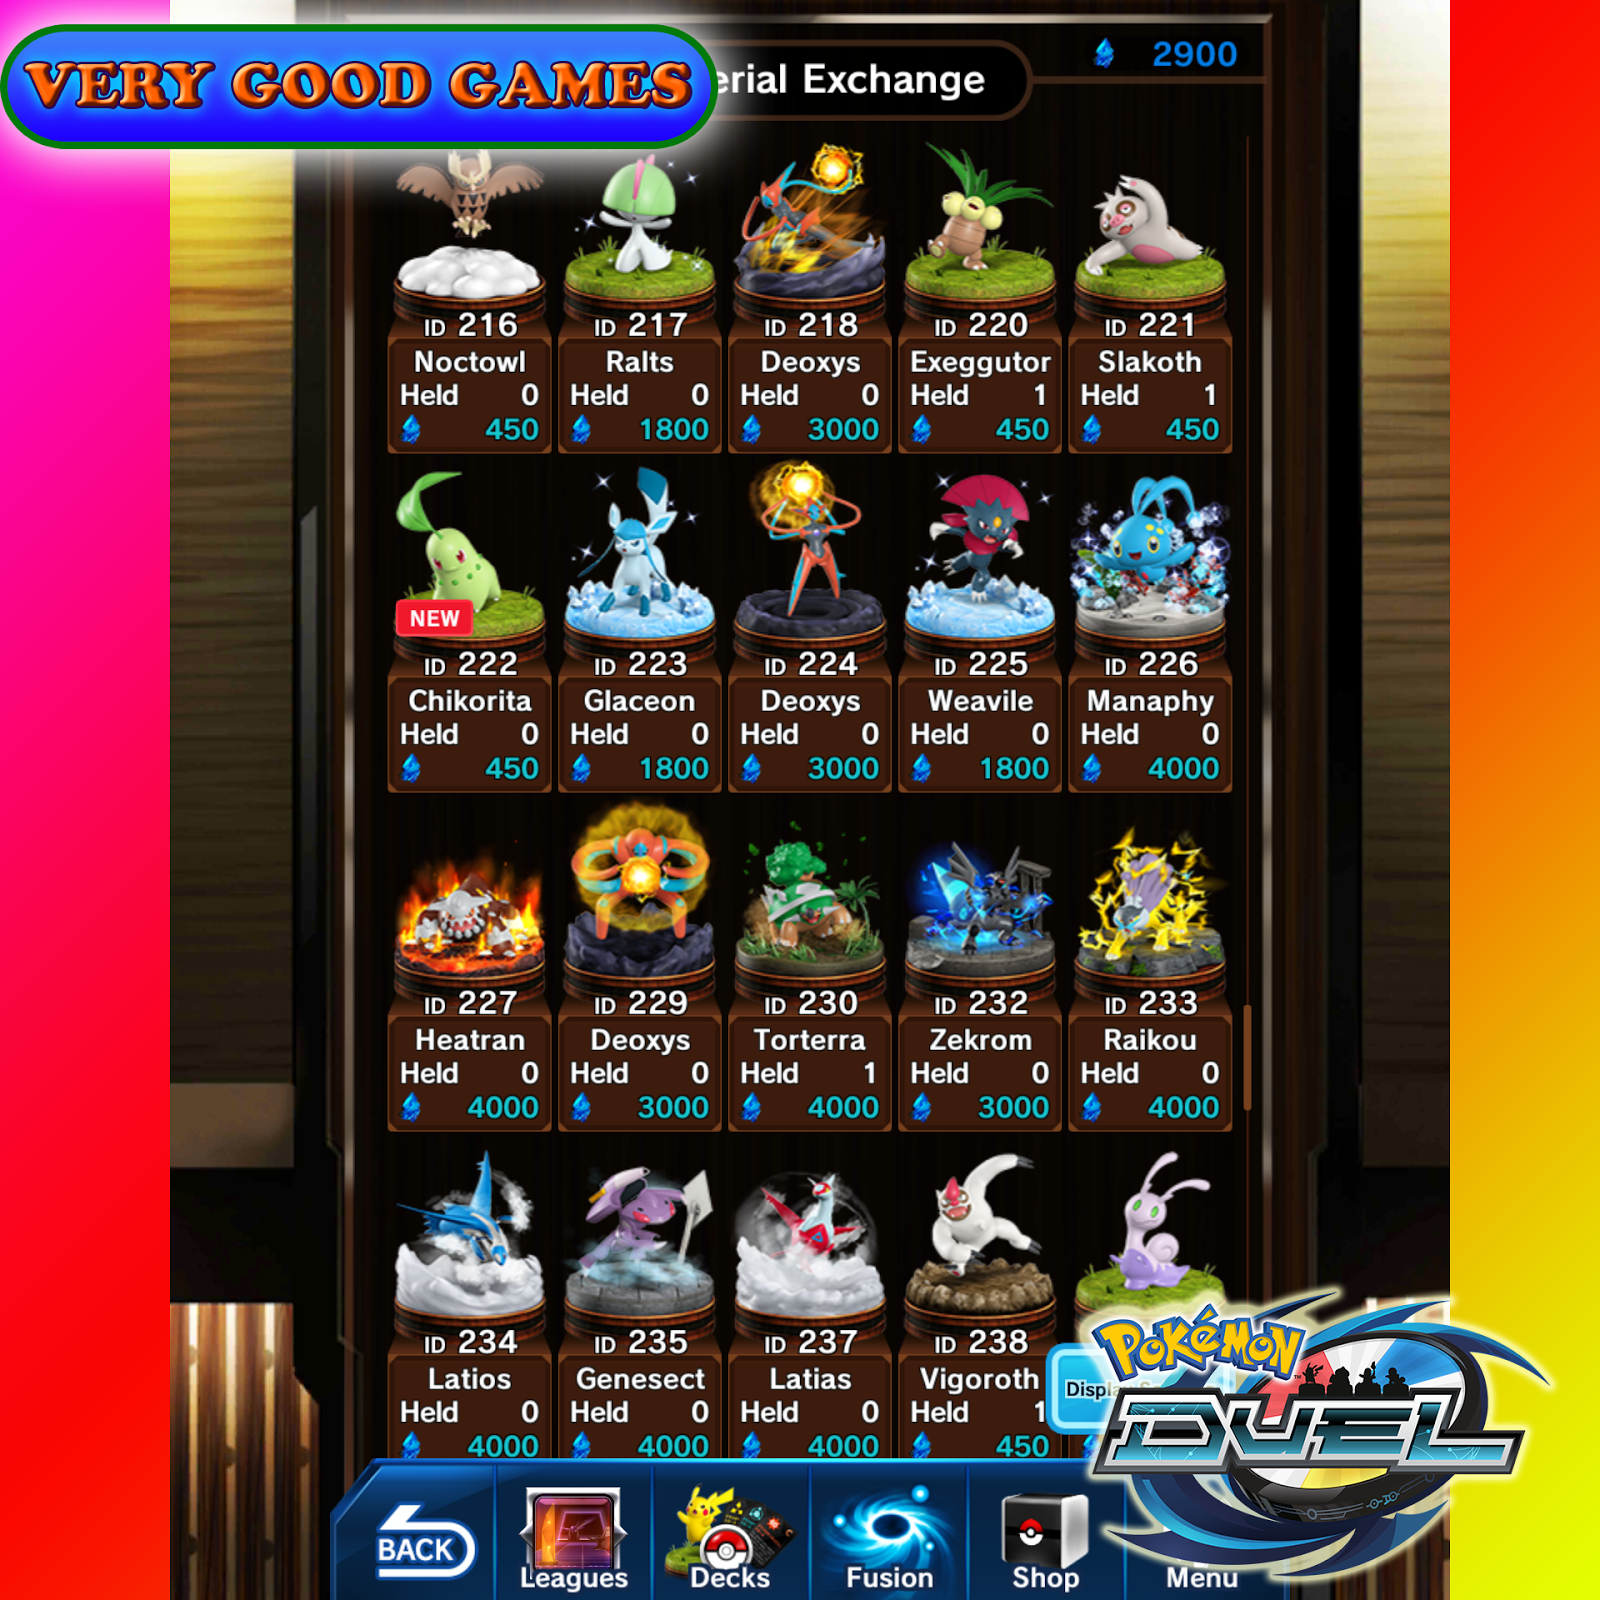 very good games how to play pokemon duel what should we know about